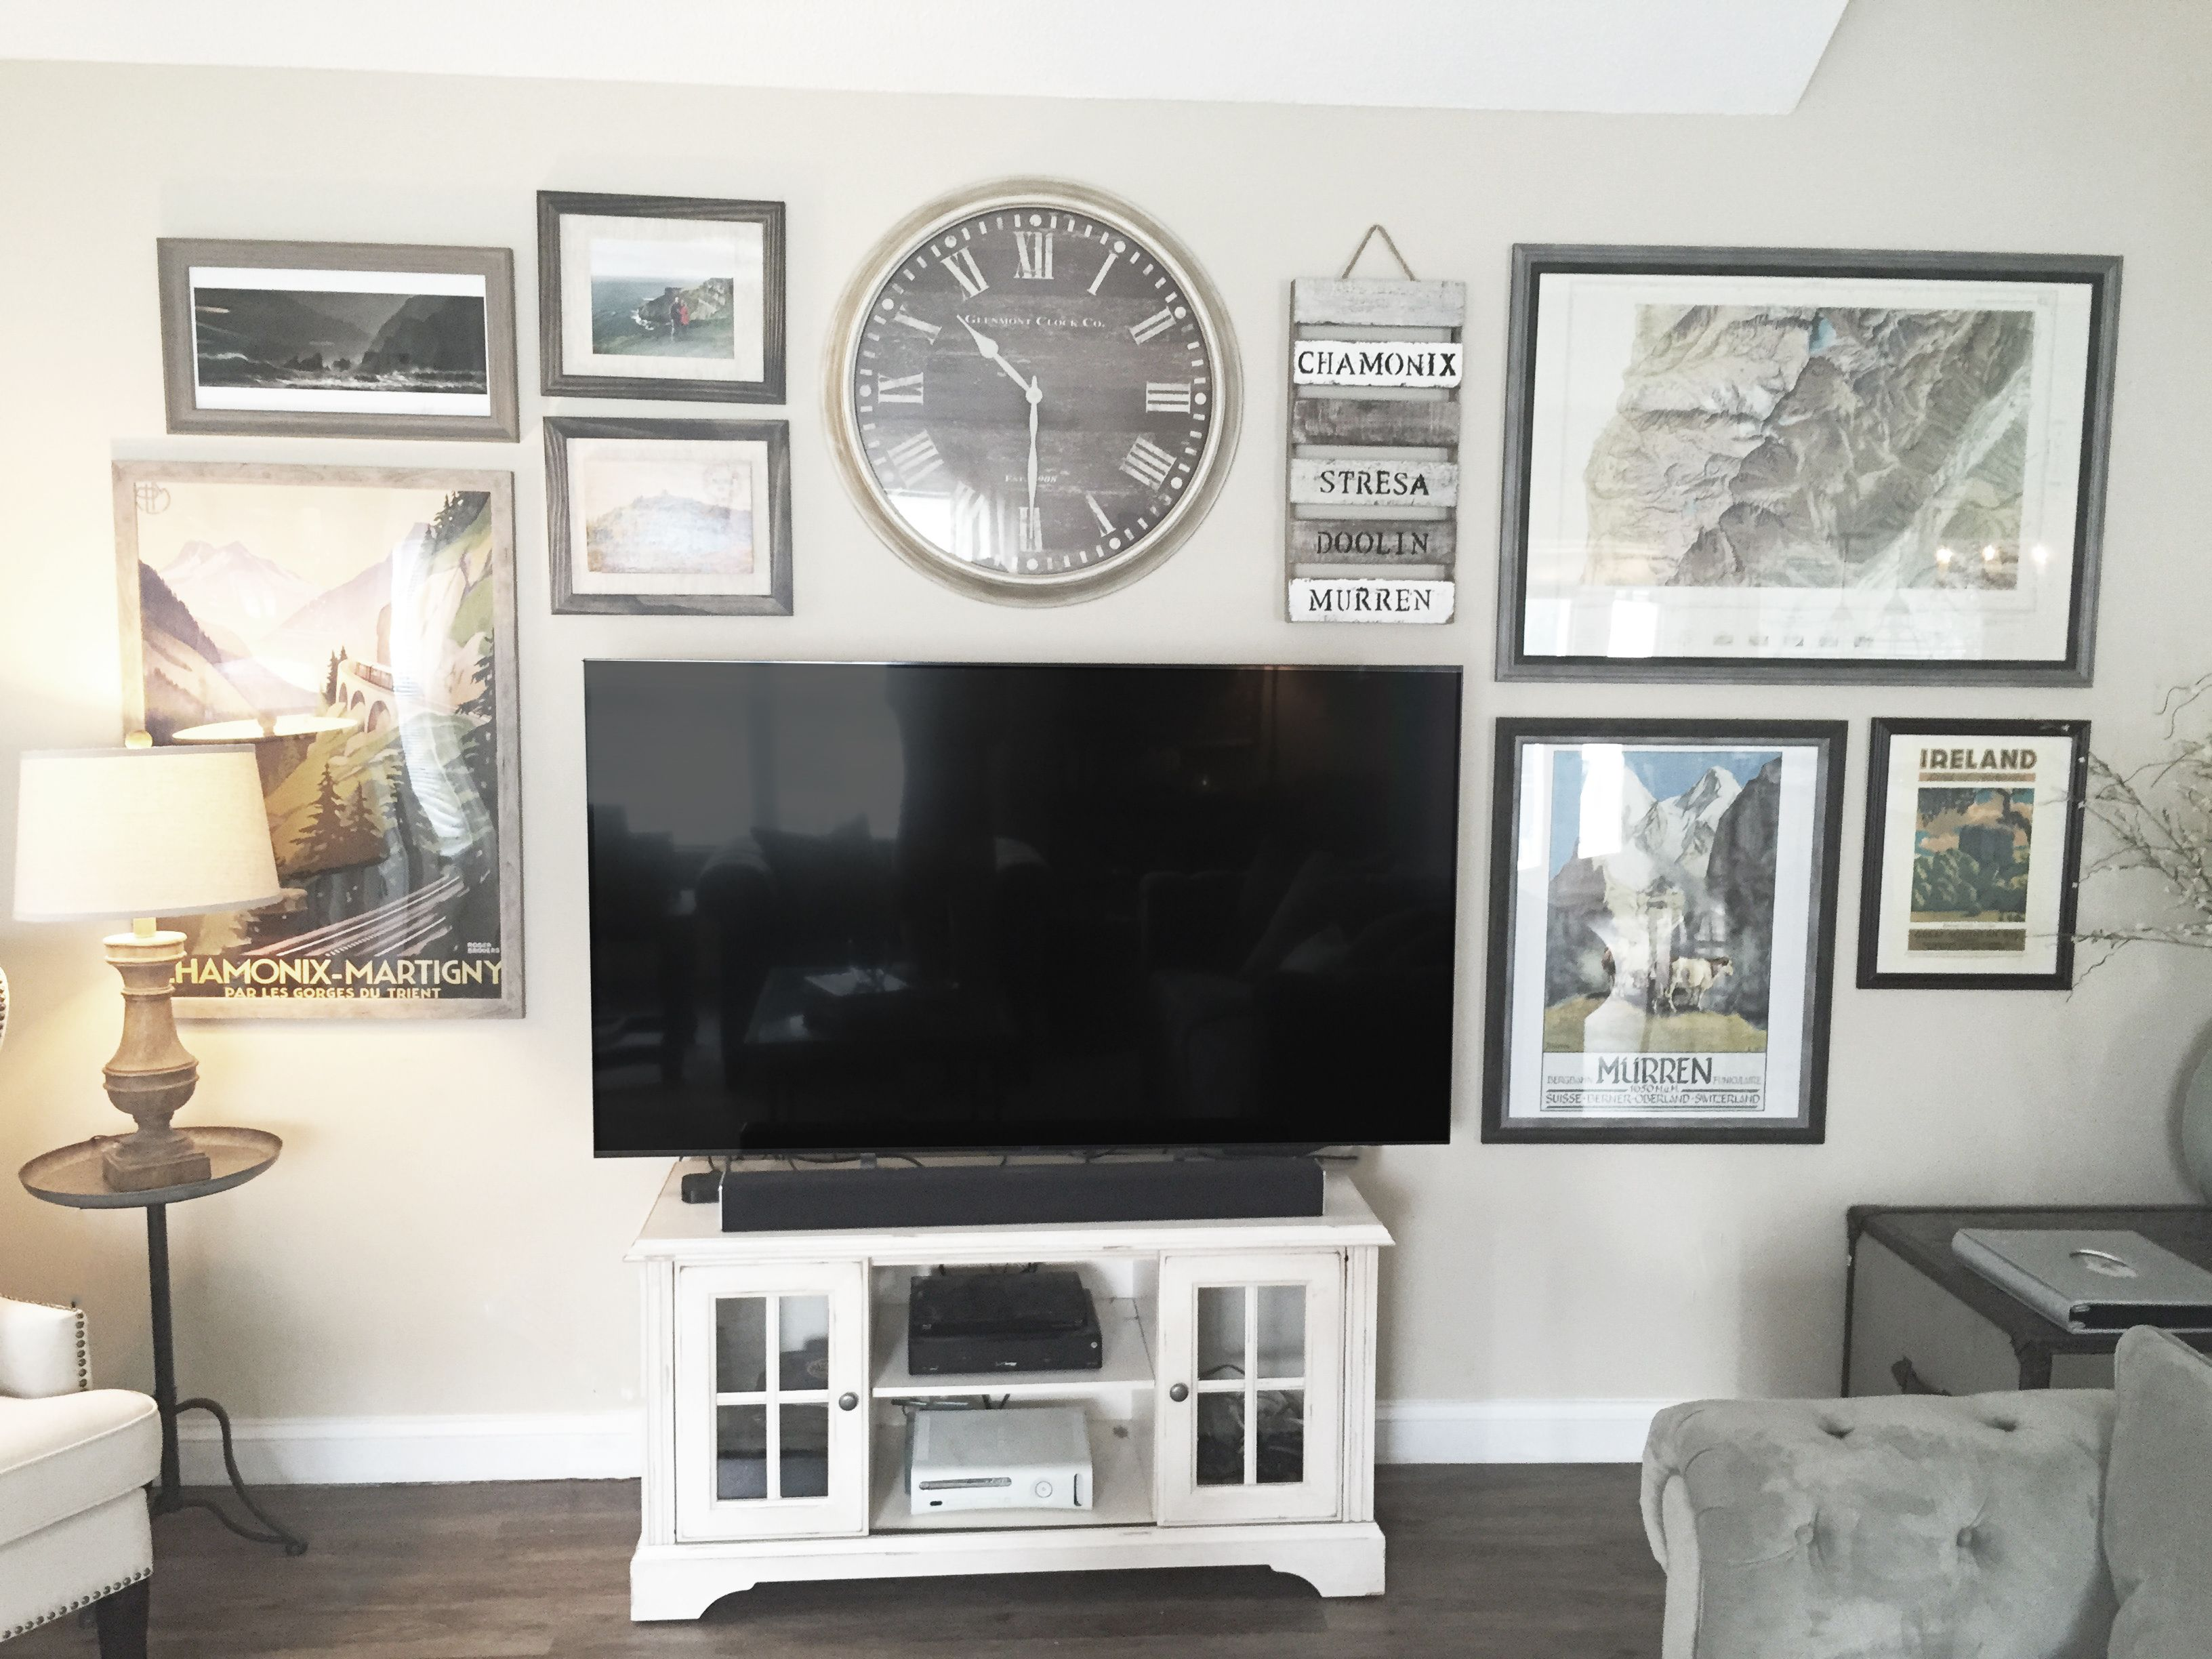 8 Creative Ways To Decorate Around Your Tv Tuft Trim Wall Decor Living Room Decor Around Tv Tv Wall Decor